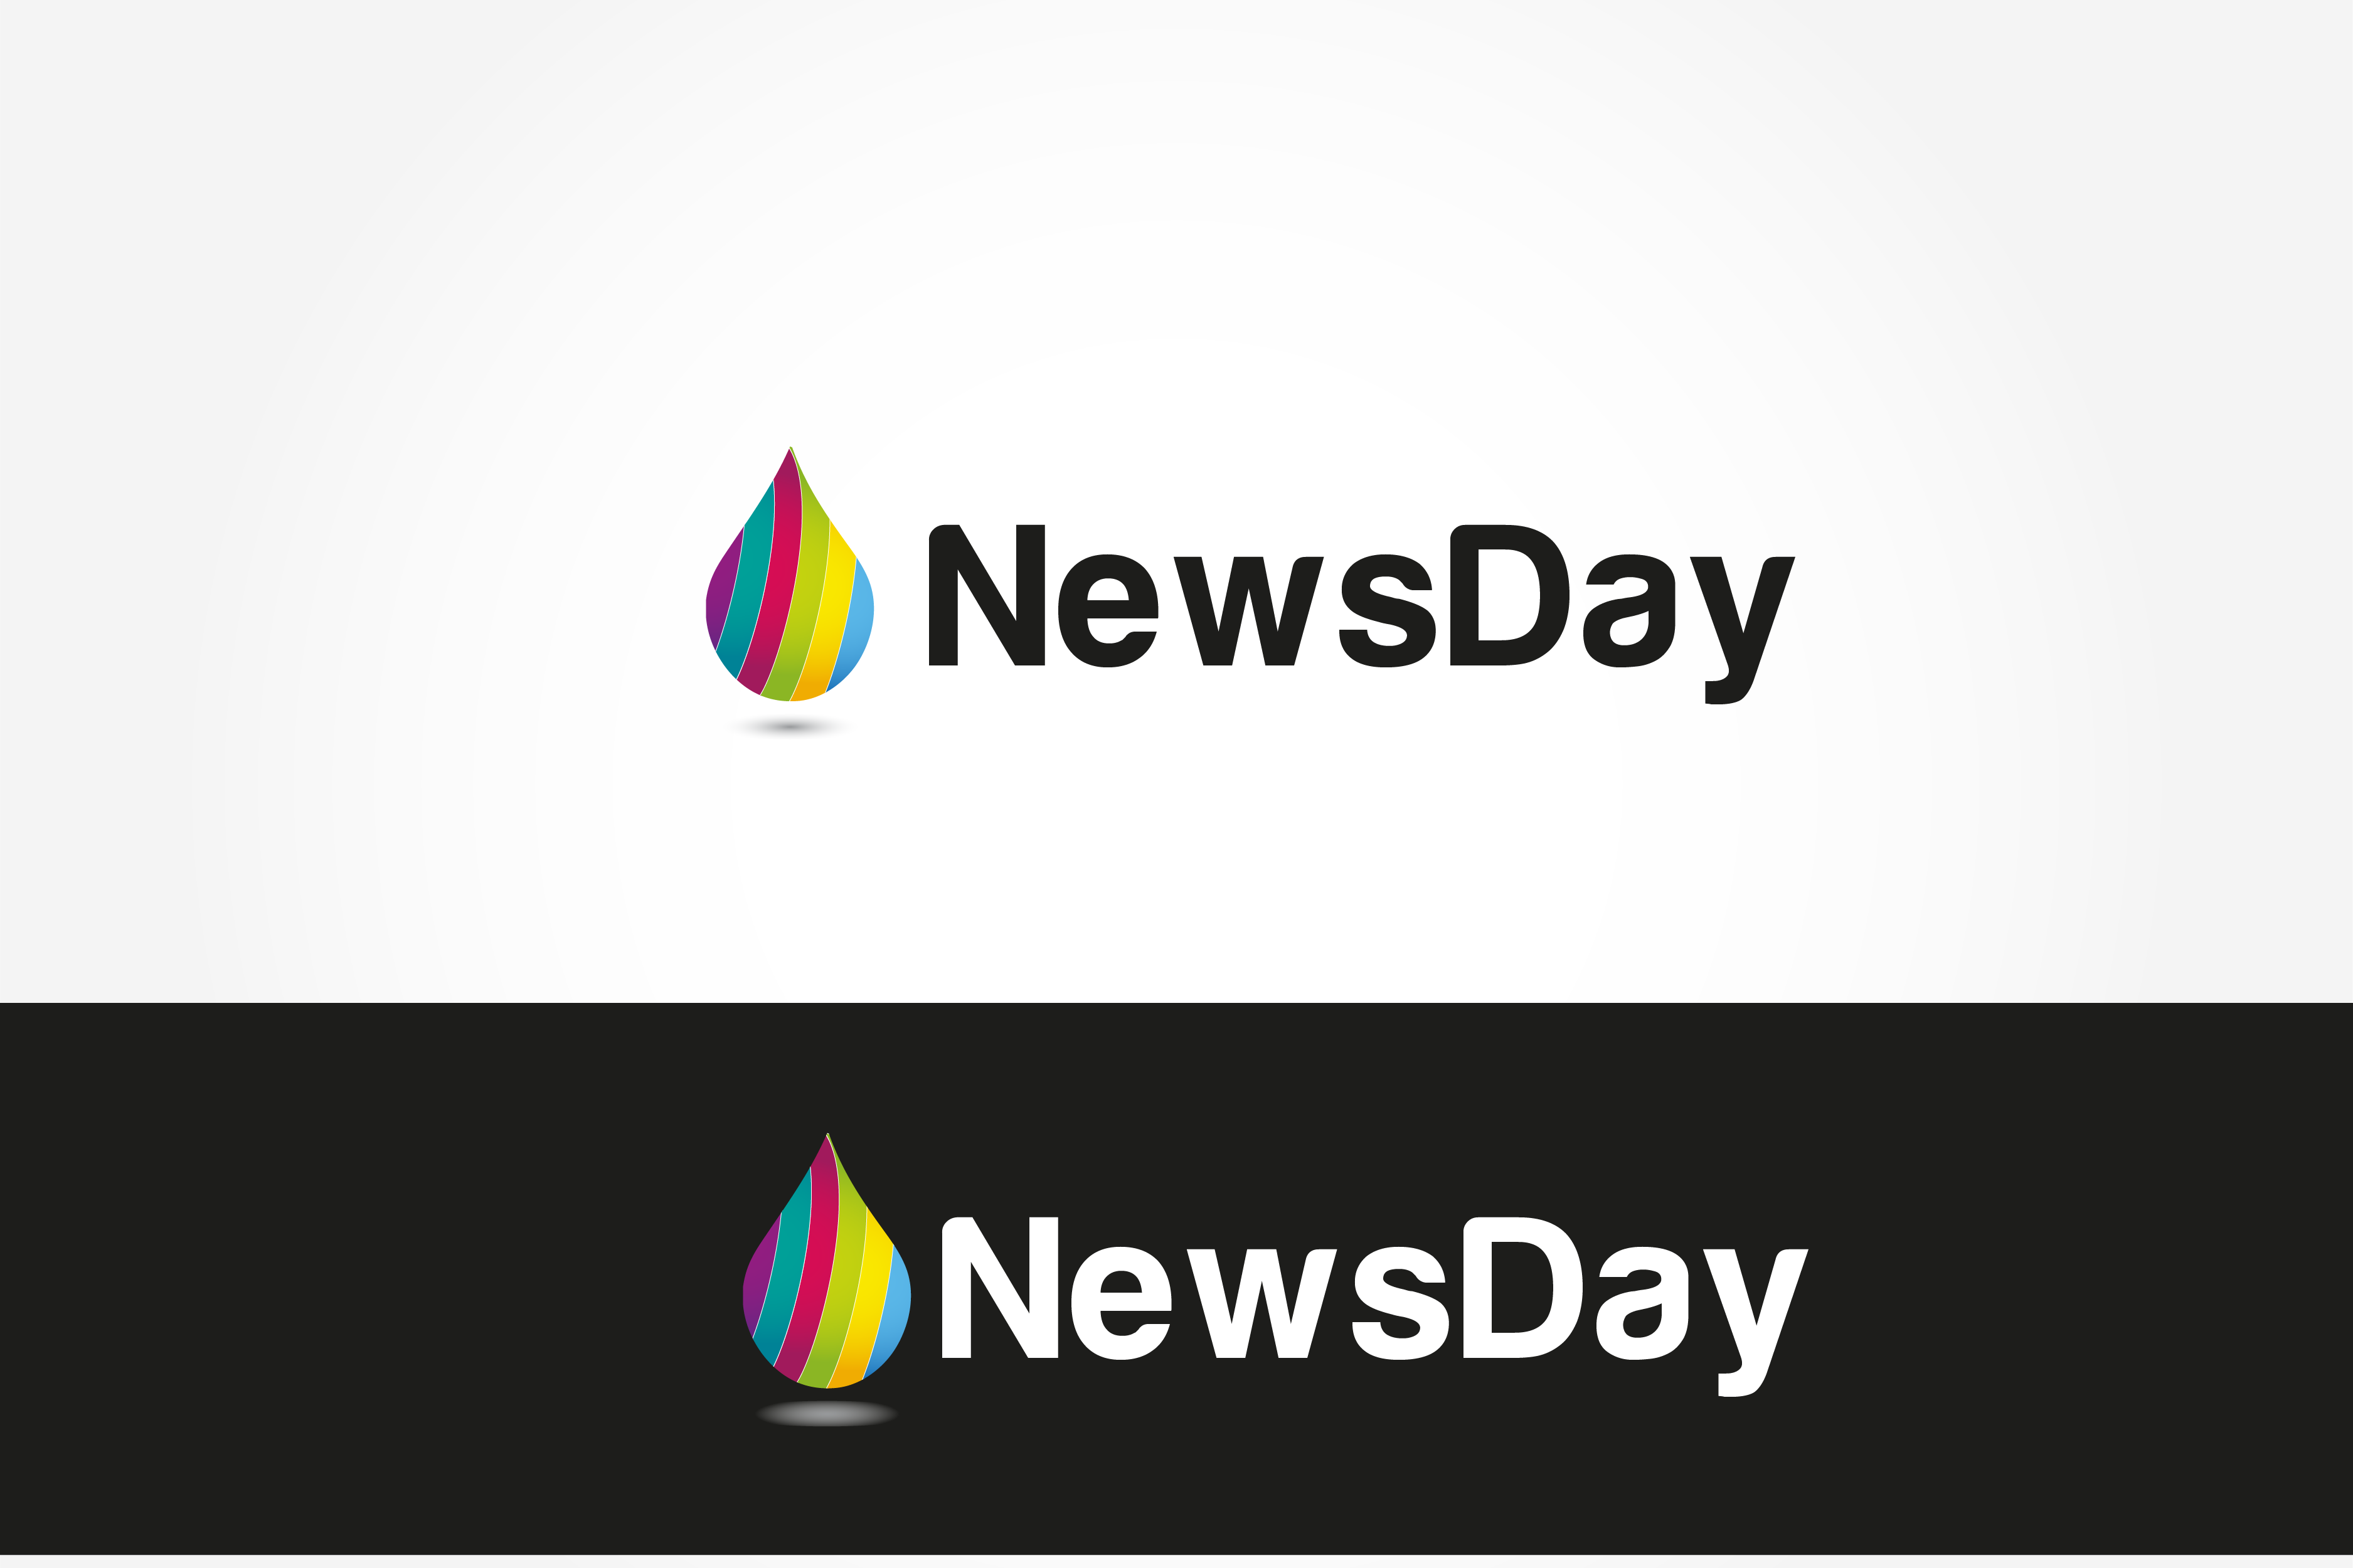 Logo Design by Private User - Entry No. 3 in the Logo Design Contest Artistic Logo Design for Newsday.